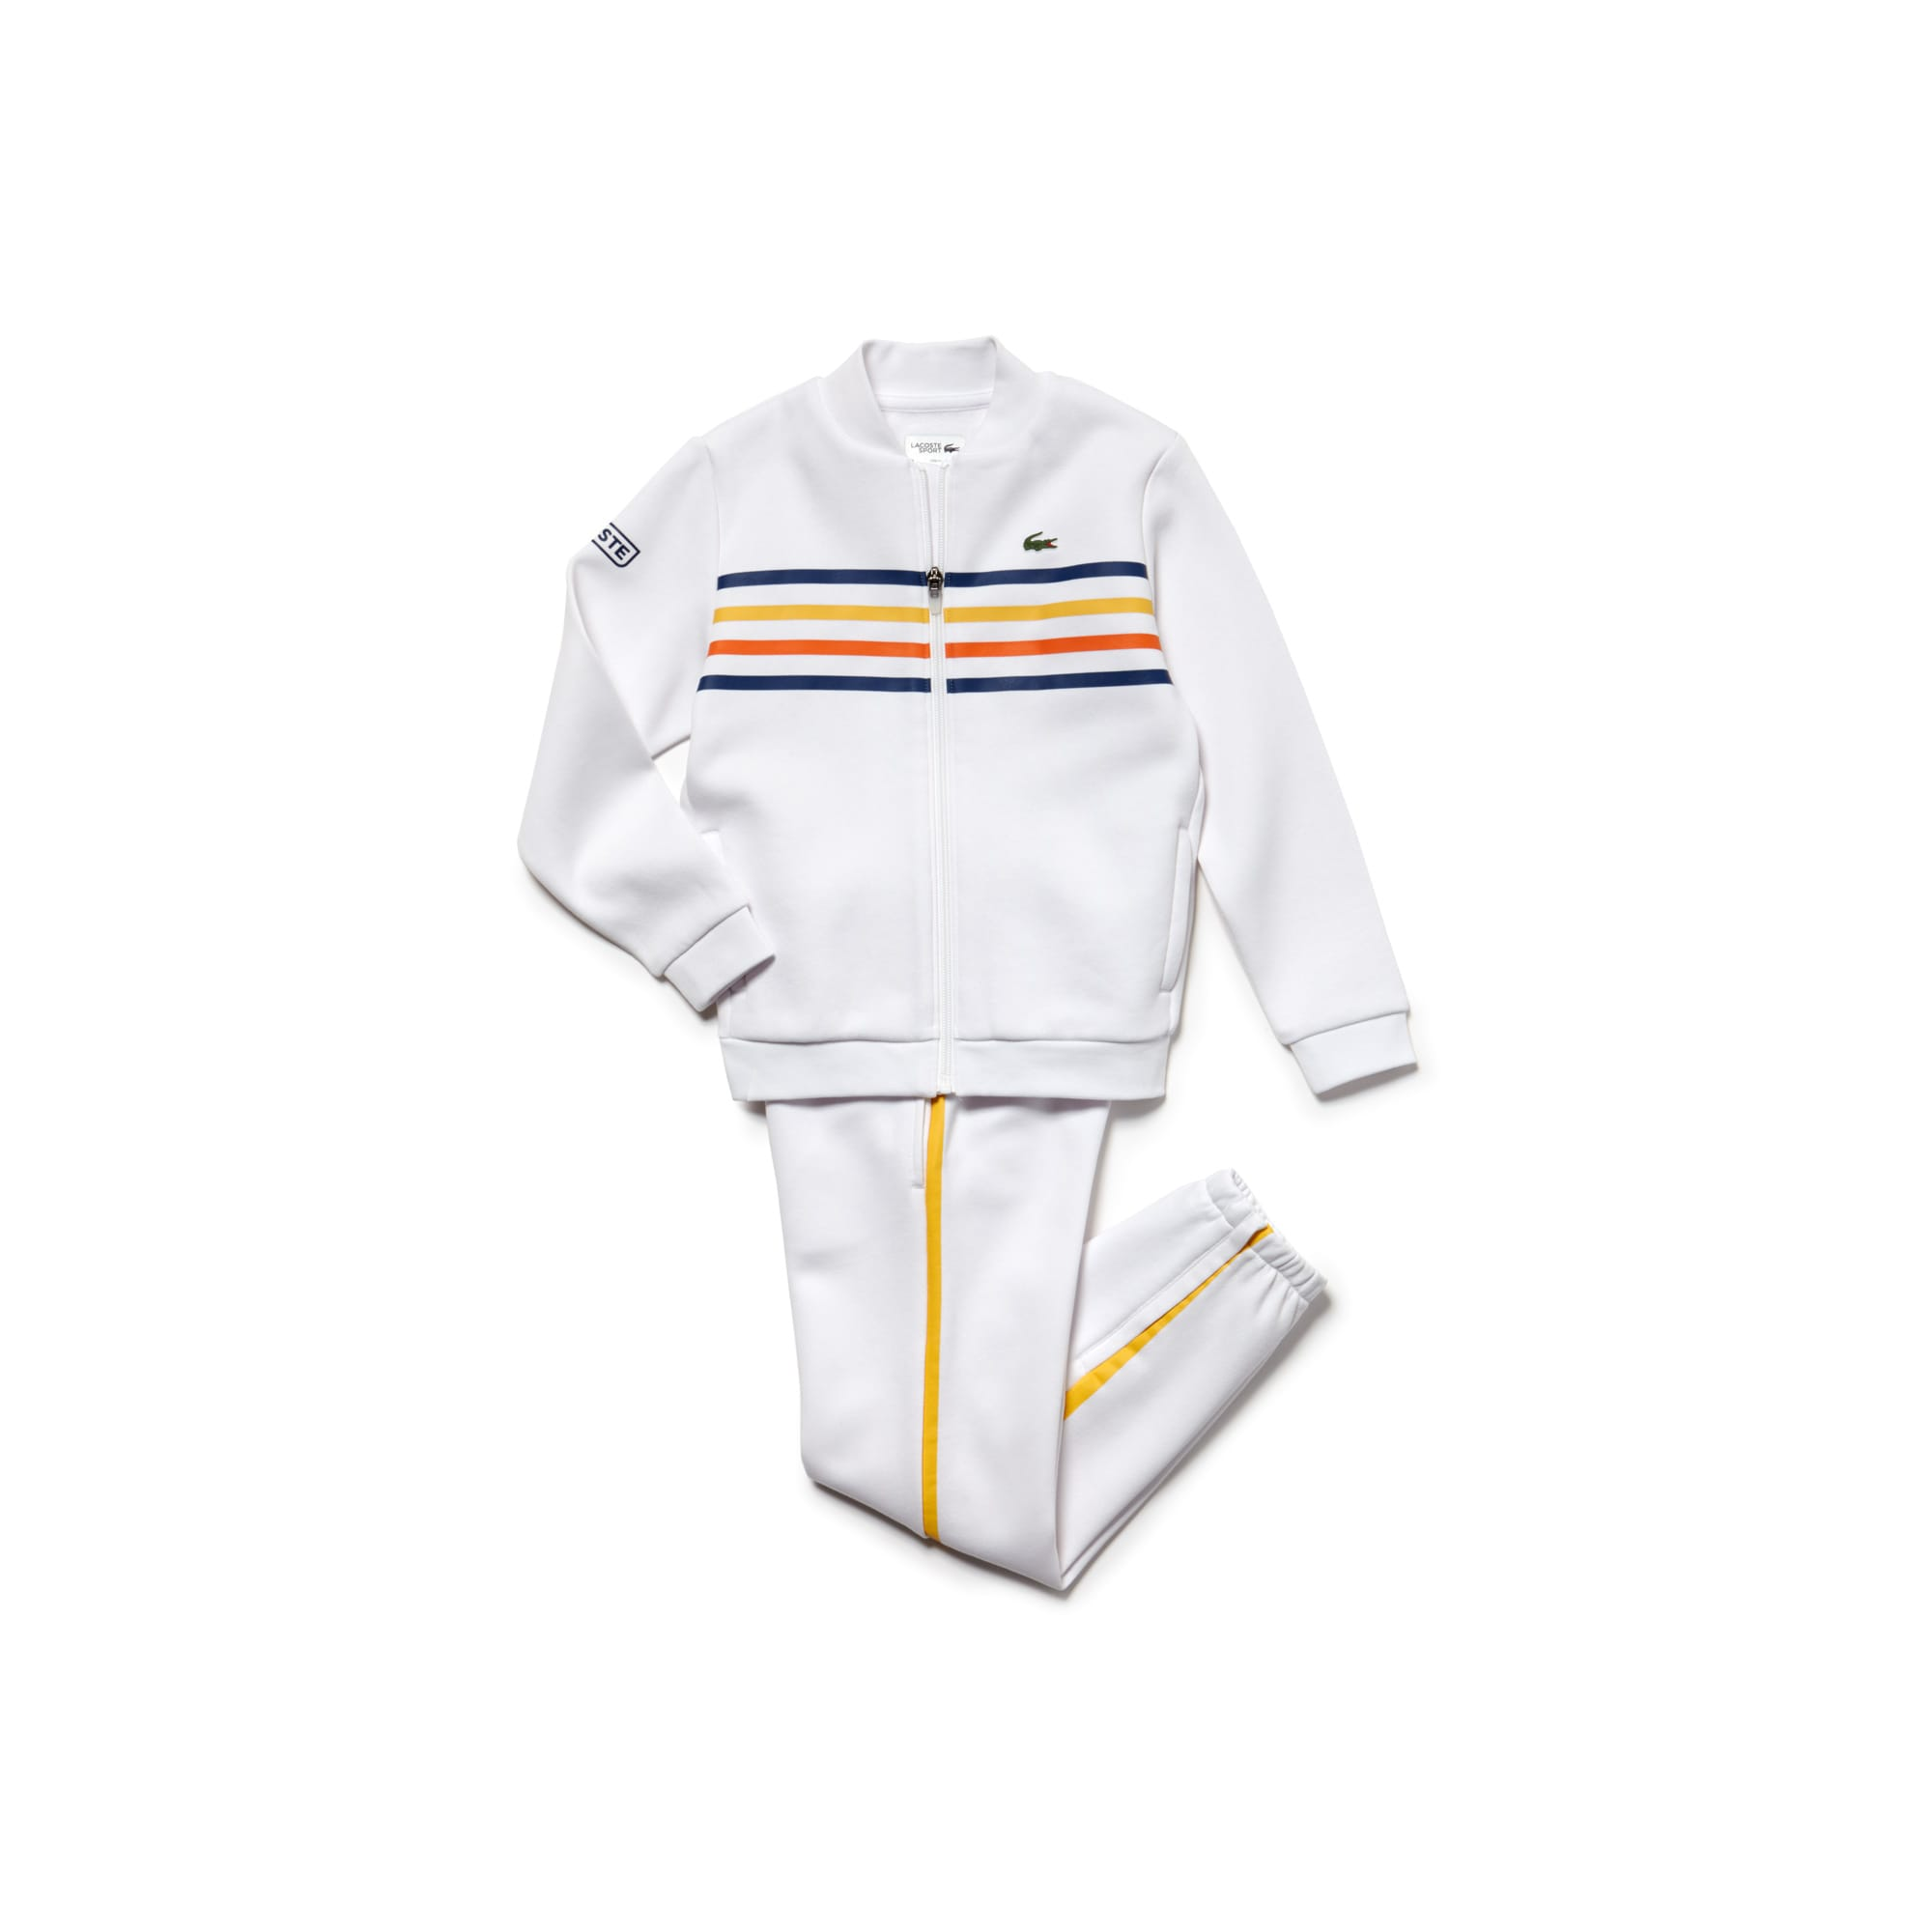 Lacoste SPORT Tennis-trainingspak jongens fleece